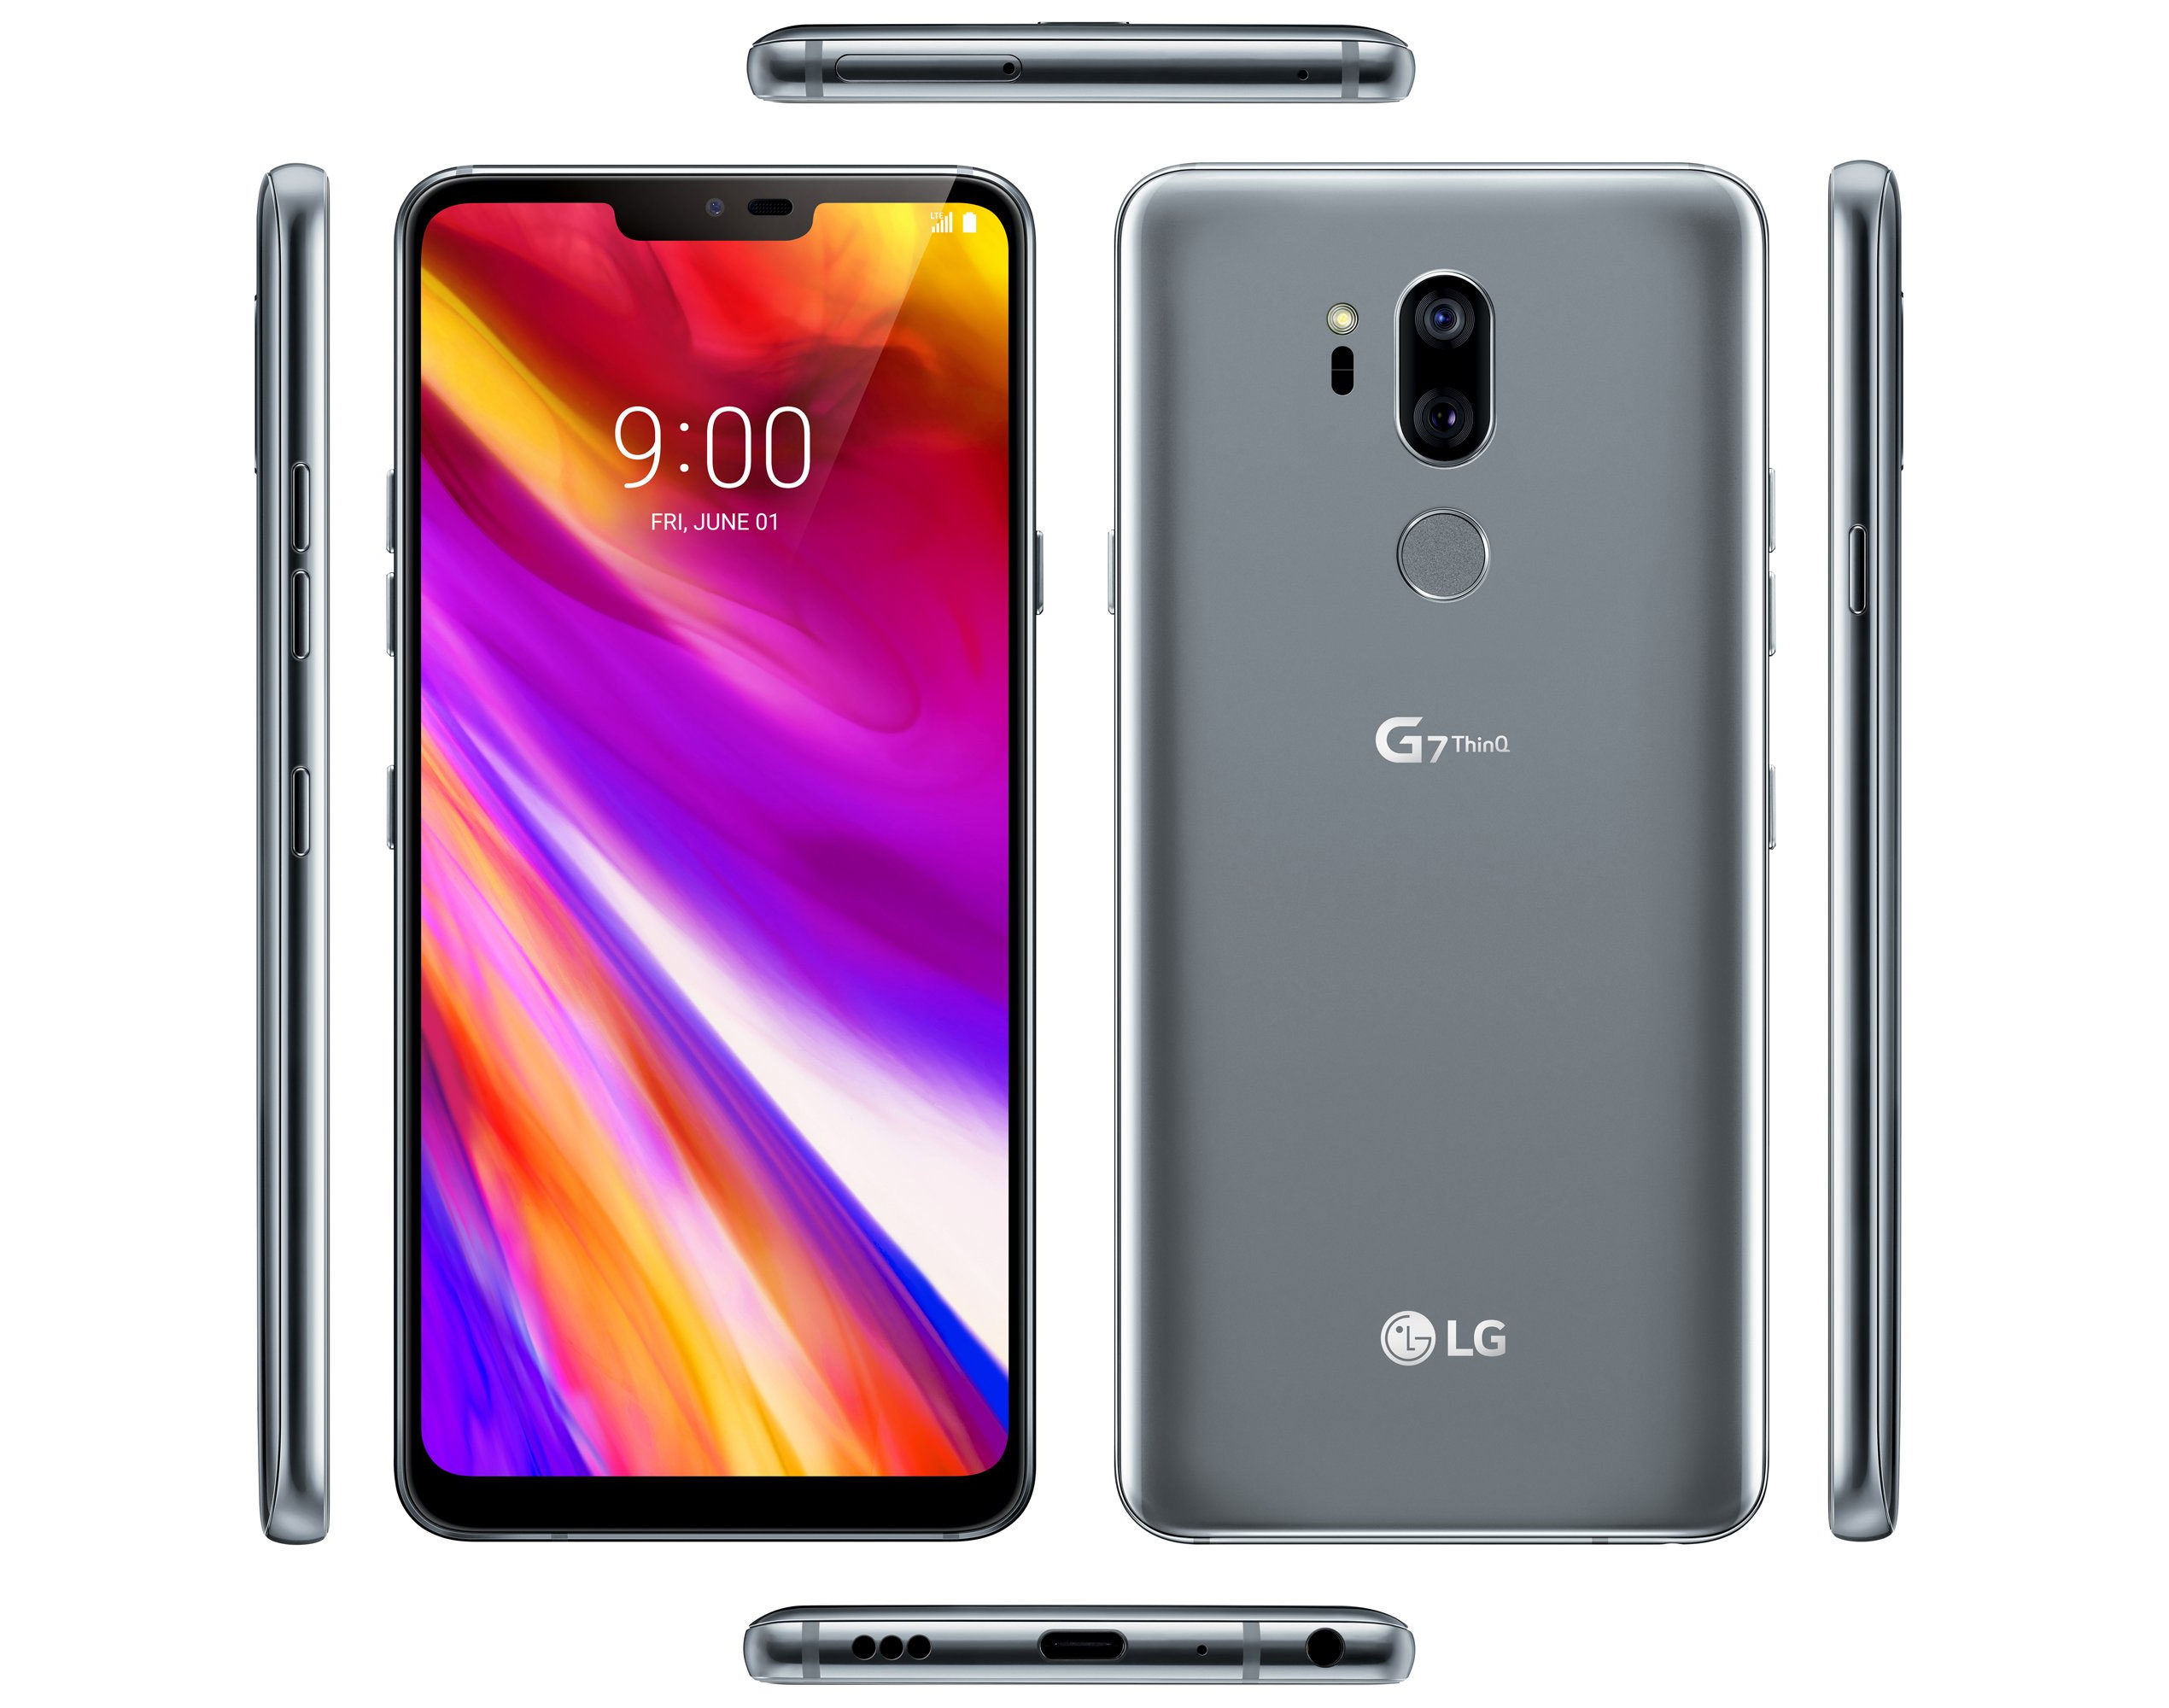 iPhone XS VS LG G7 ThinQ